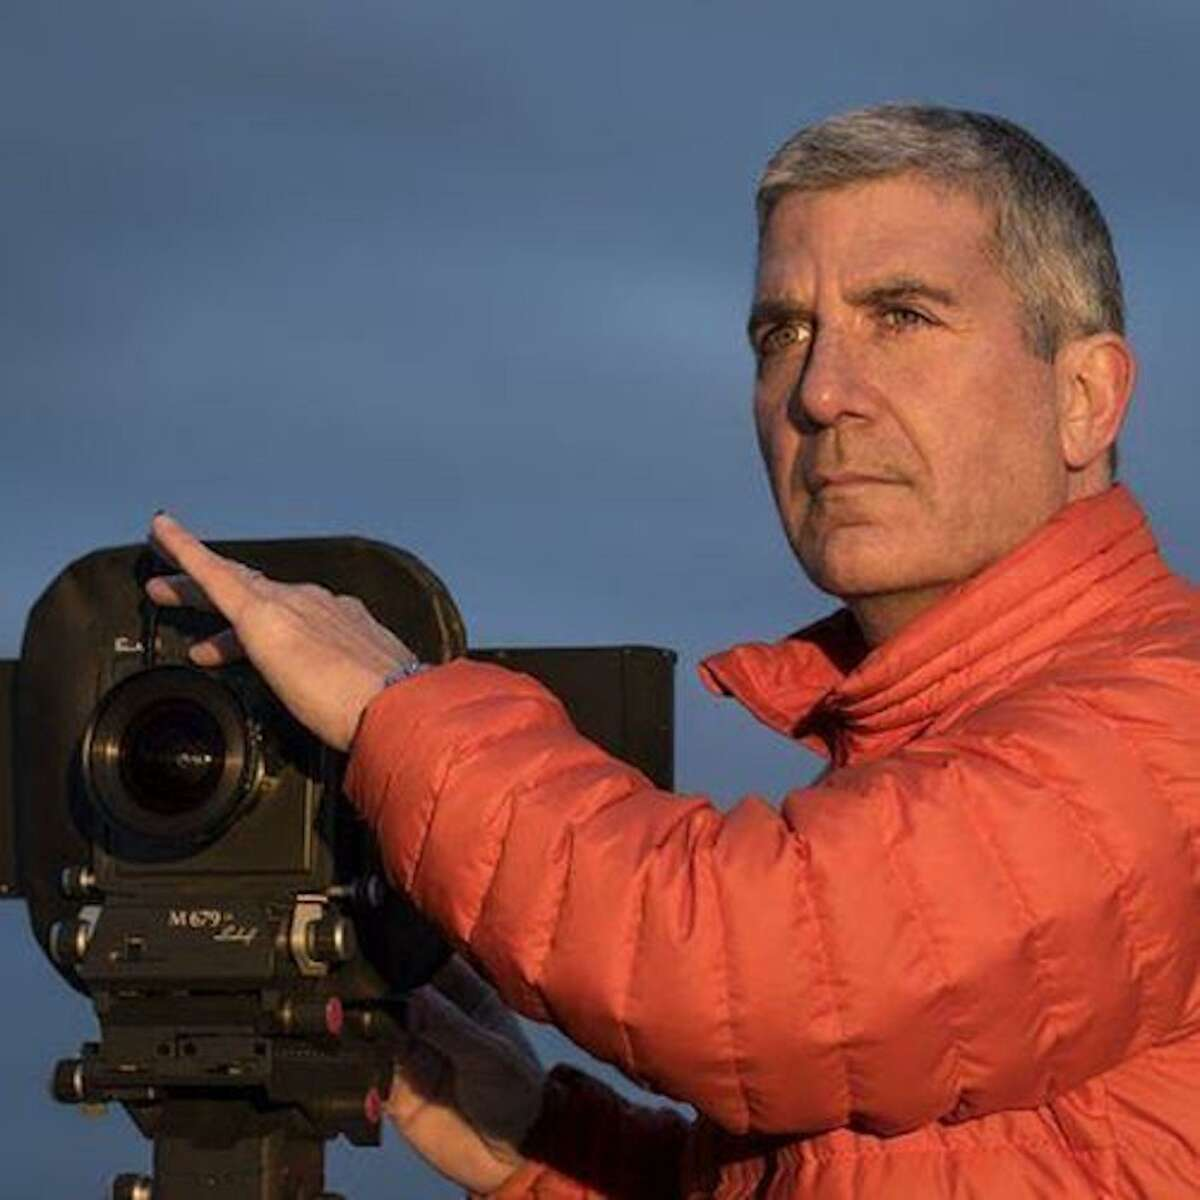 """Photographer Stephen Wilkes, who juried the Carriage Barn Arts Center's 40th annual Photography Show, visited his exhibit titled: """"Day to Night,"""" and signed copies of his recently published Taschen monograph on Sunday, January 26, 2020, at 3 p.m. at the Carriage Barn in New Canaan. Pictured is Stephen Wilkes."""